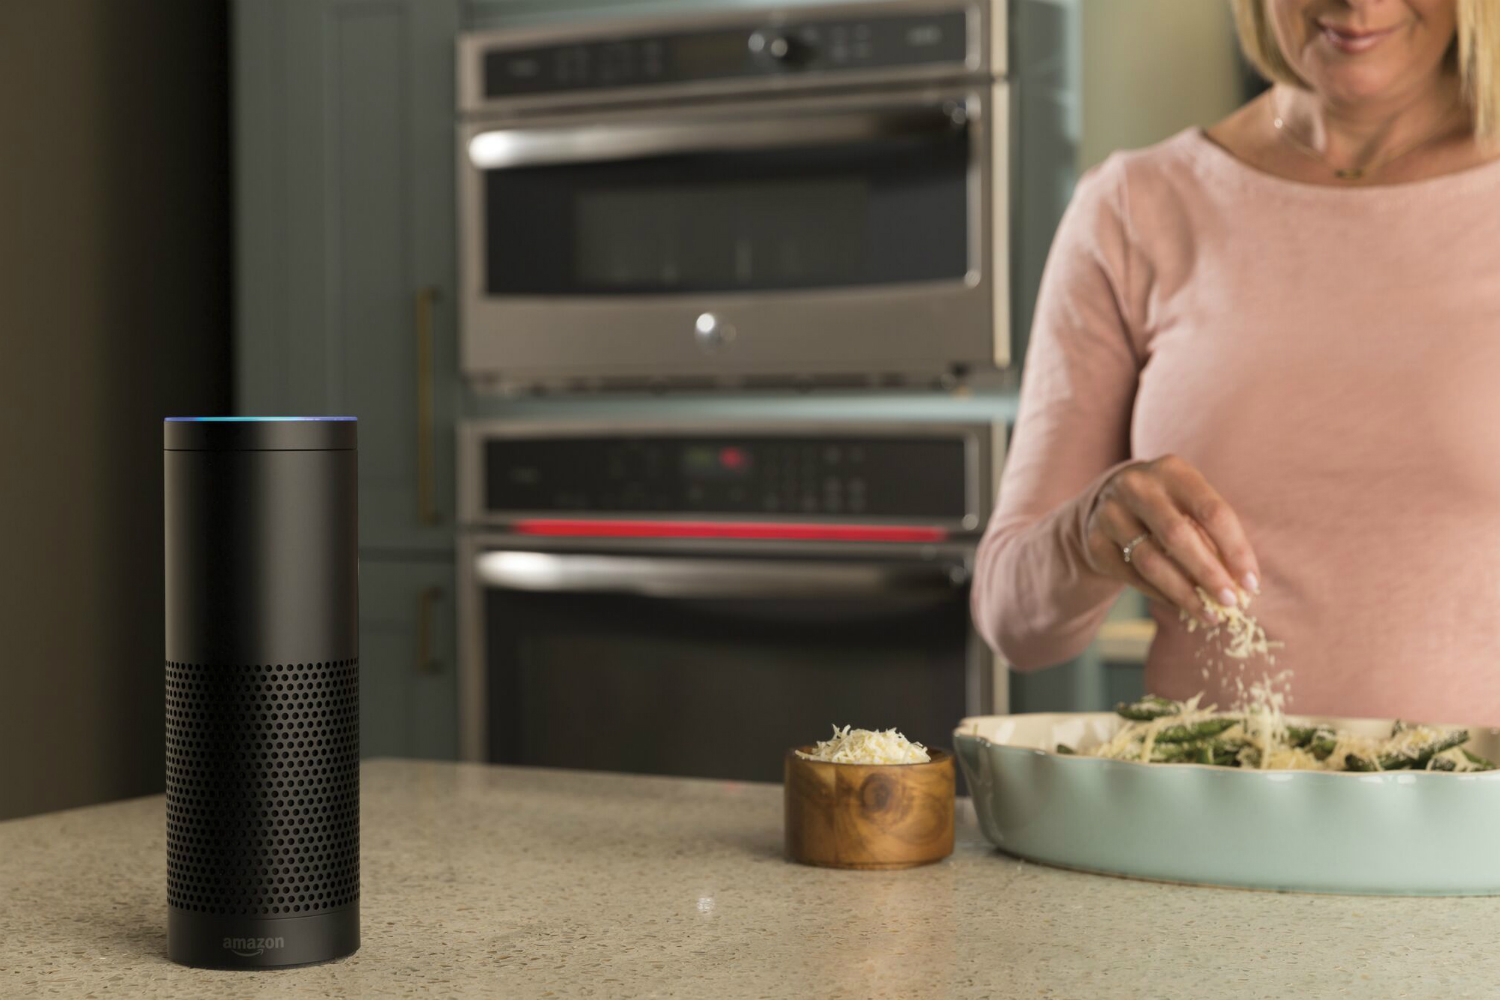 Ассистент Alexa AI от Amazon. Фото: digitaltrends.com